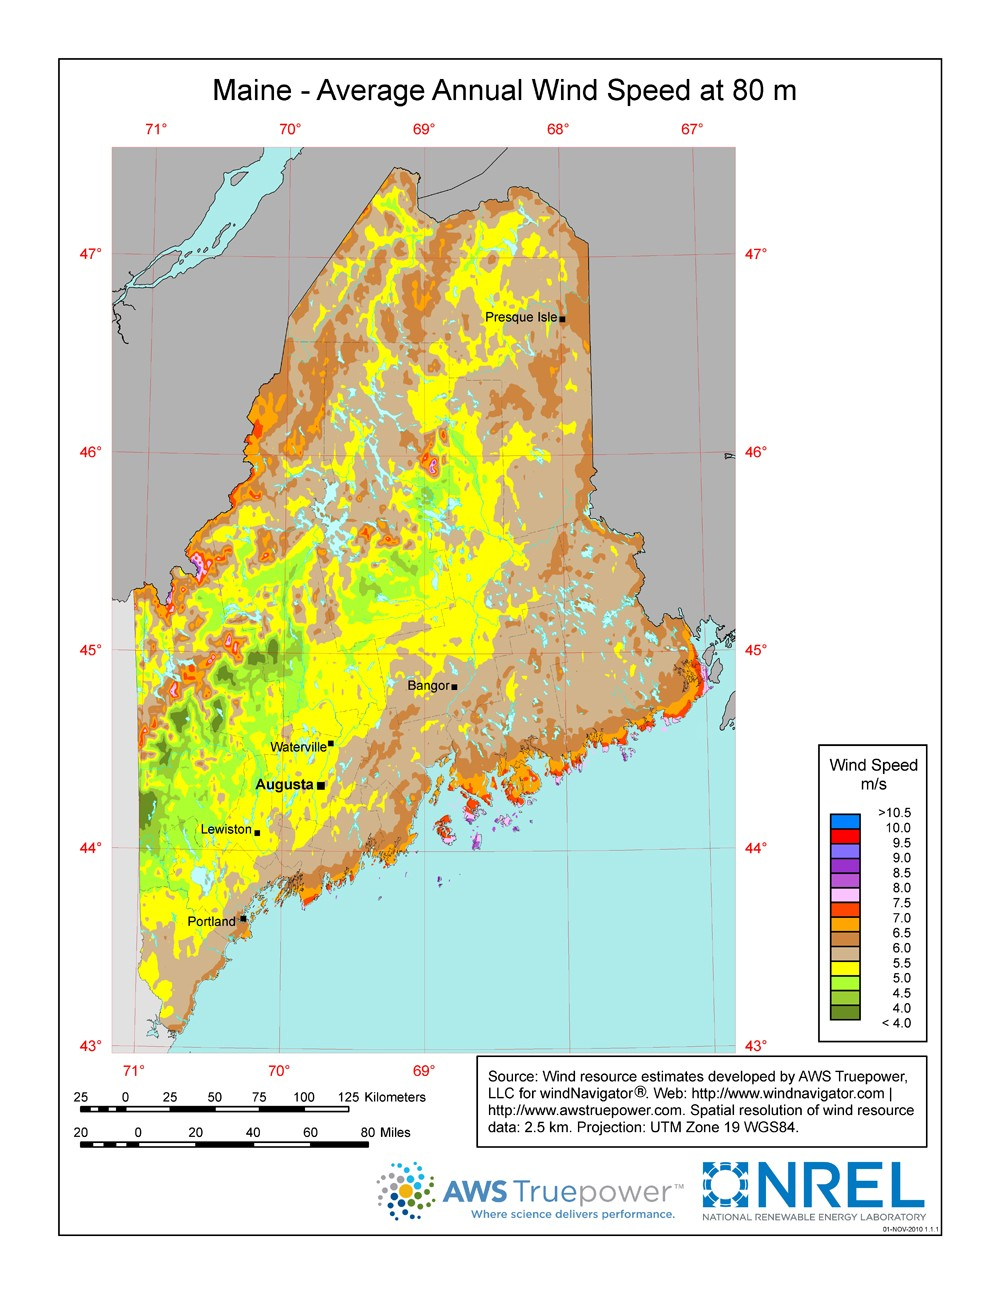 Maine wind resource map.